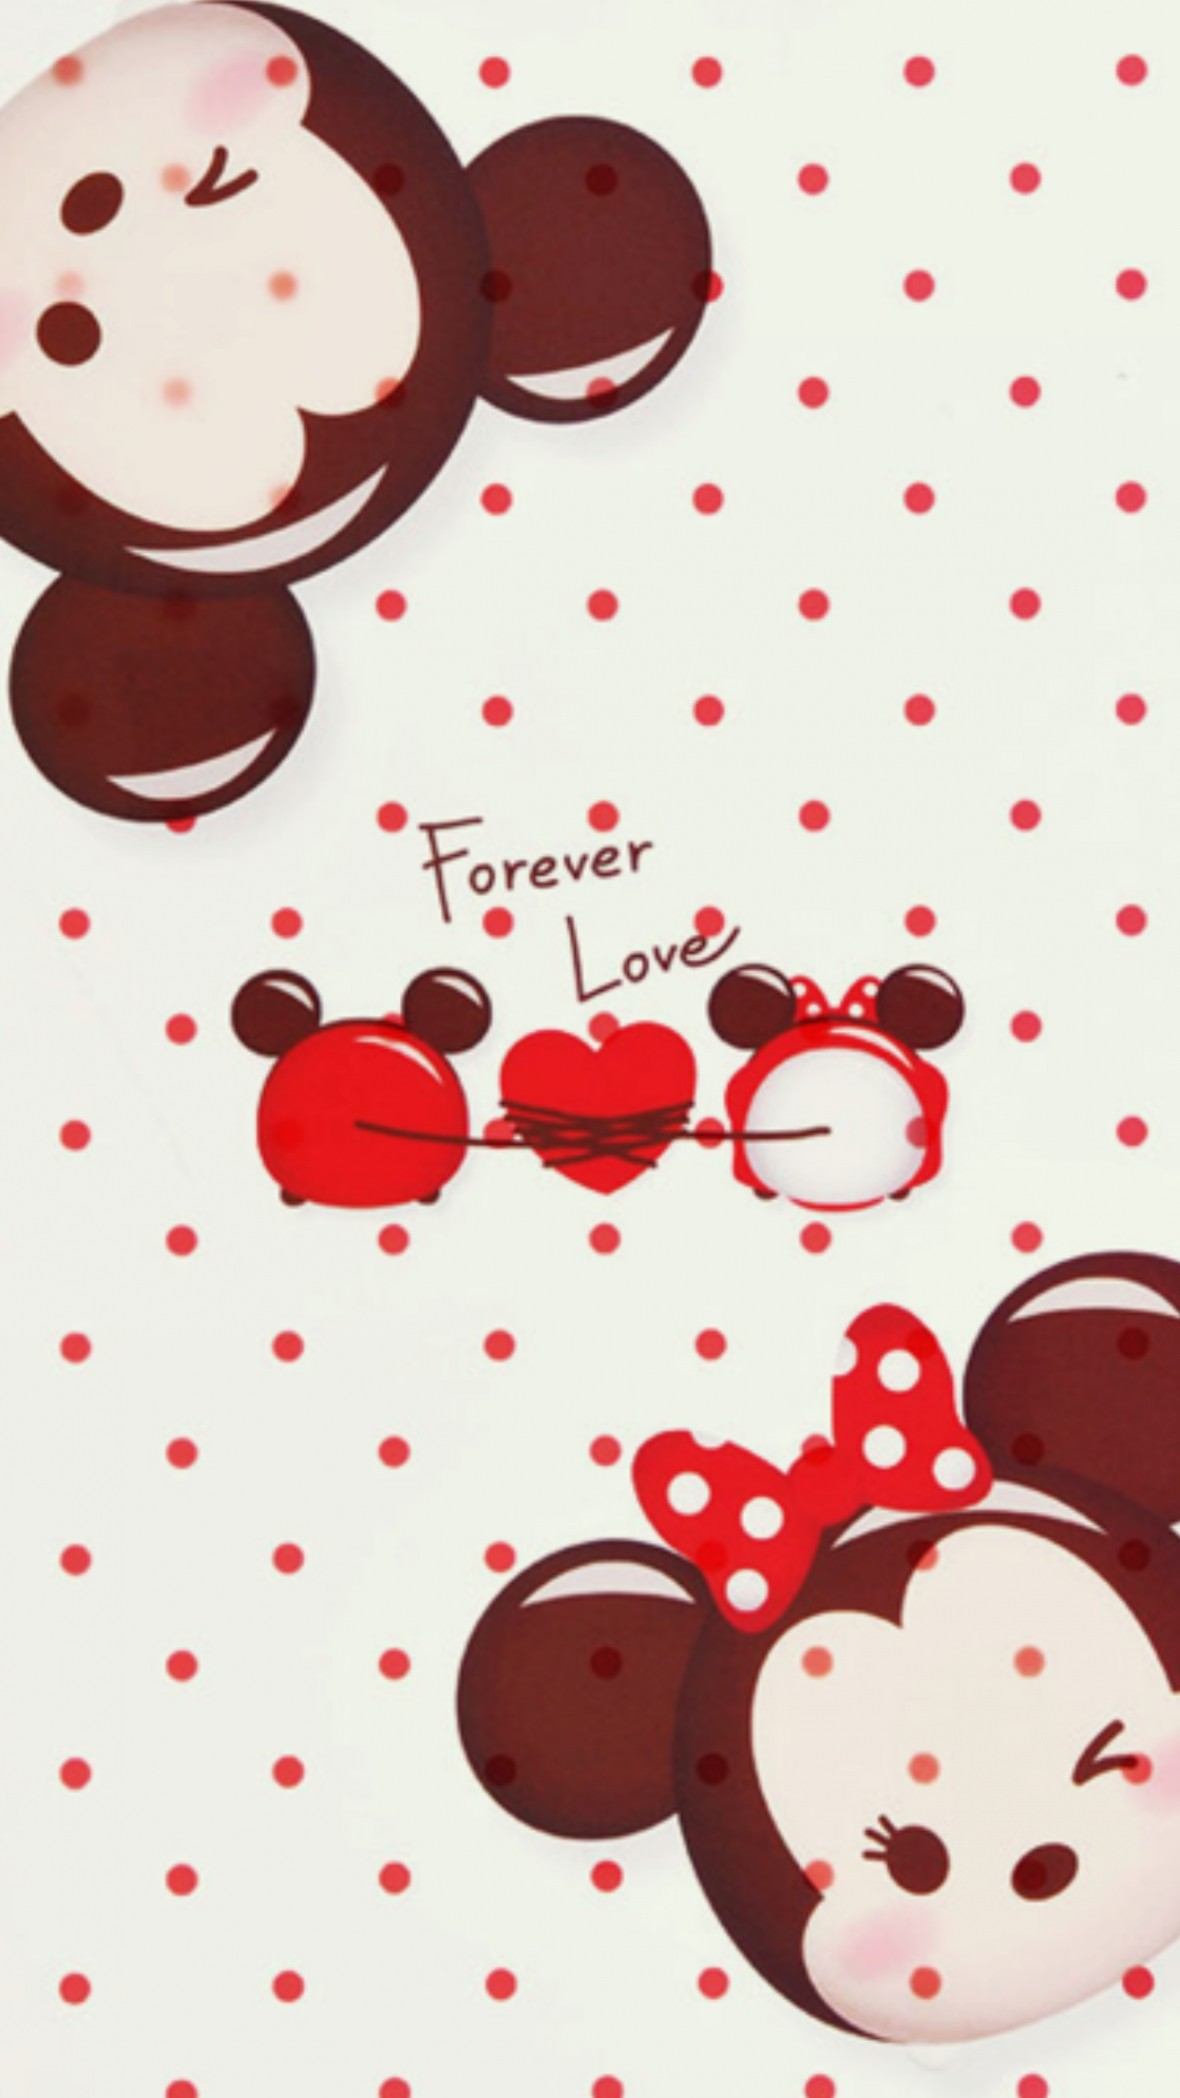 Mickey and minnie mouse wallpaper 64 images - Minni et mickey ...